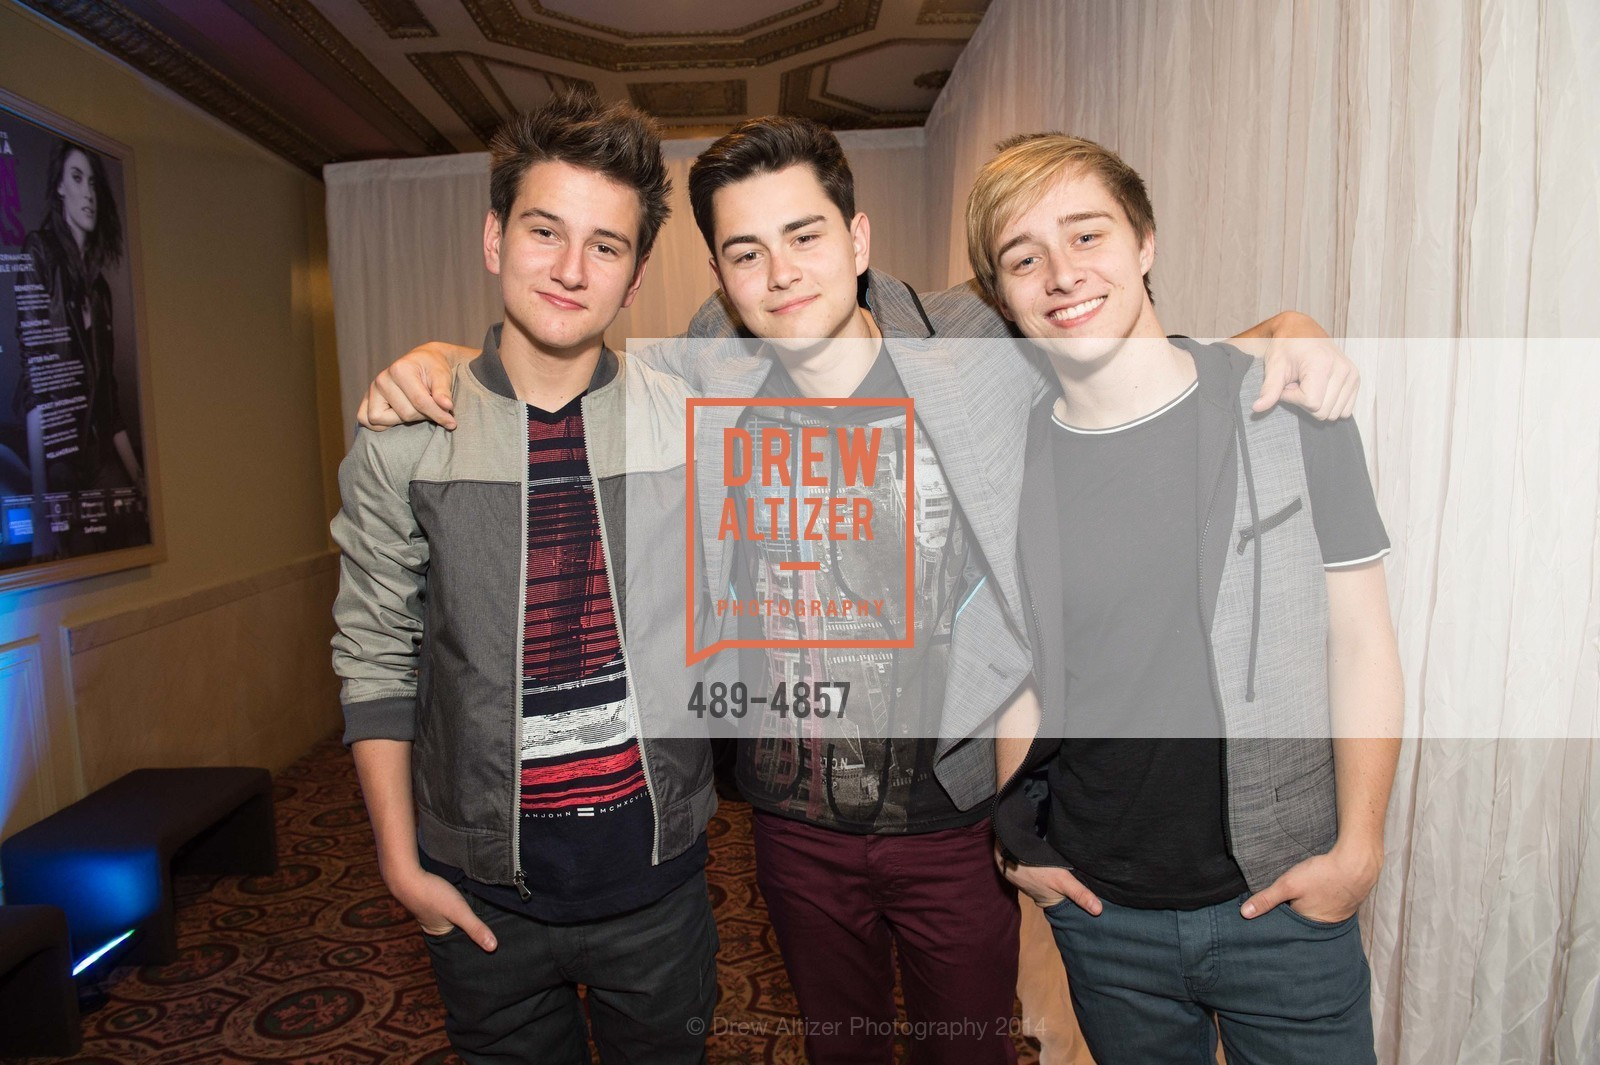 Before You Exit, Photo #489-4857